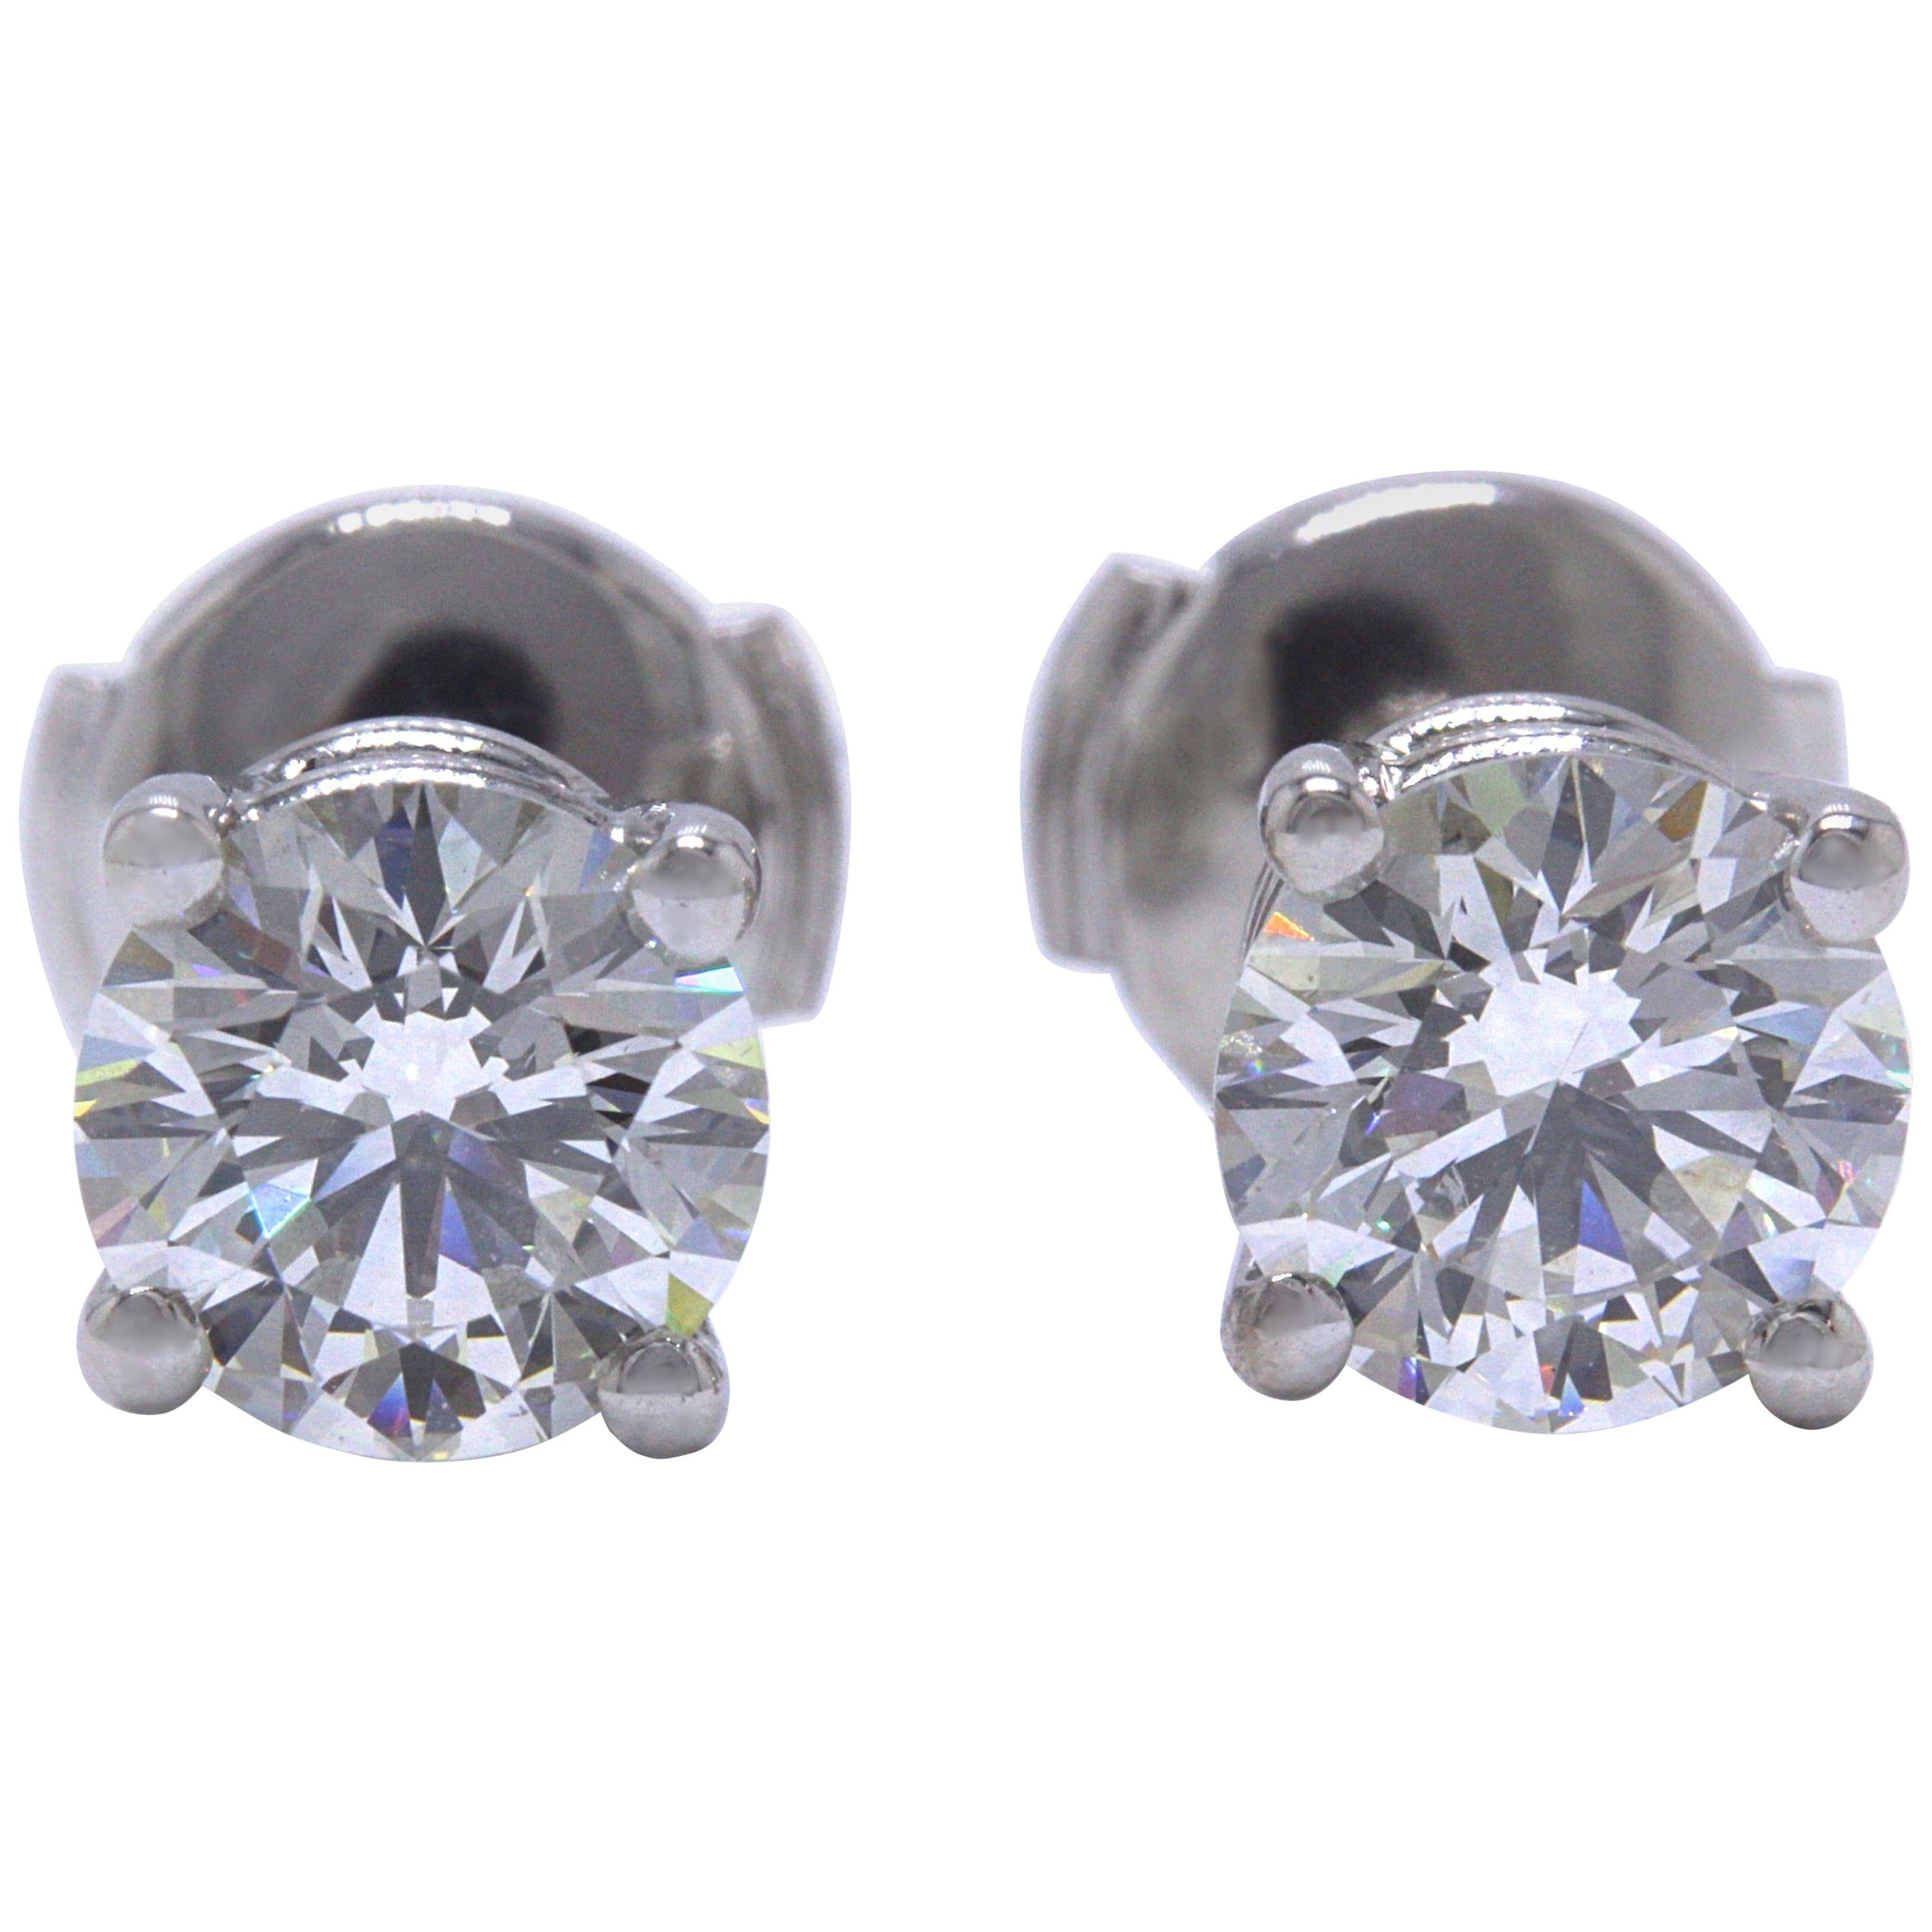 25878f29e Tiffany & Co. Stud Earrings - 46 For Sale at 1stdibs